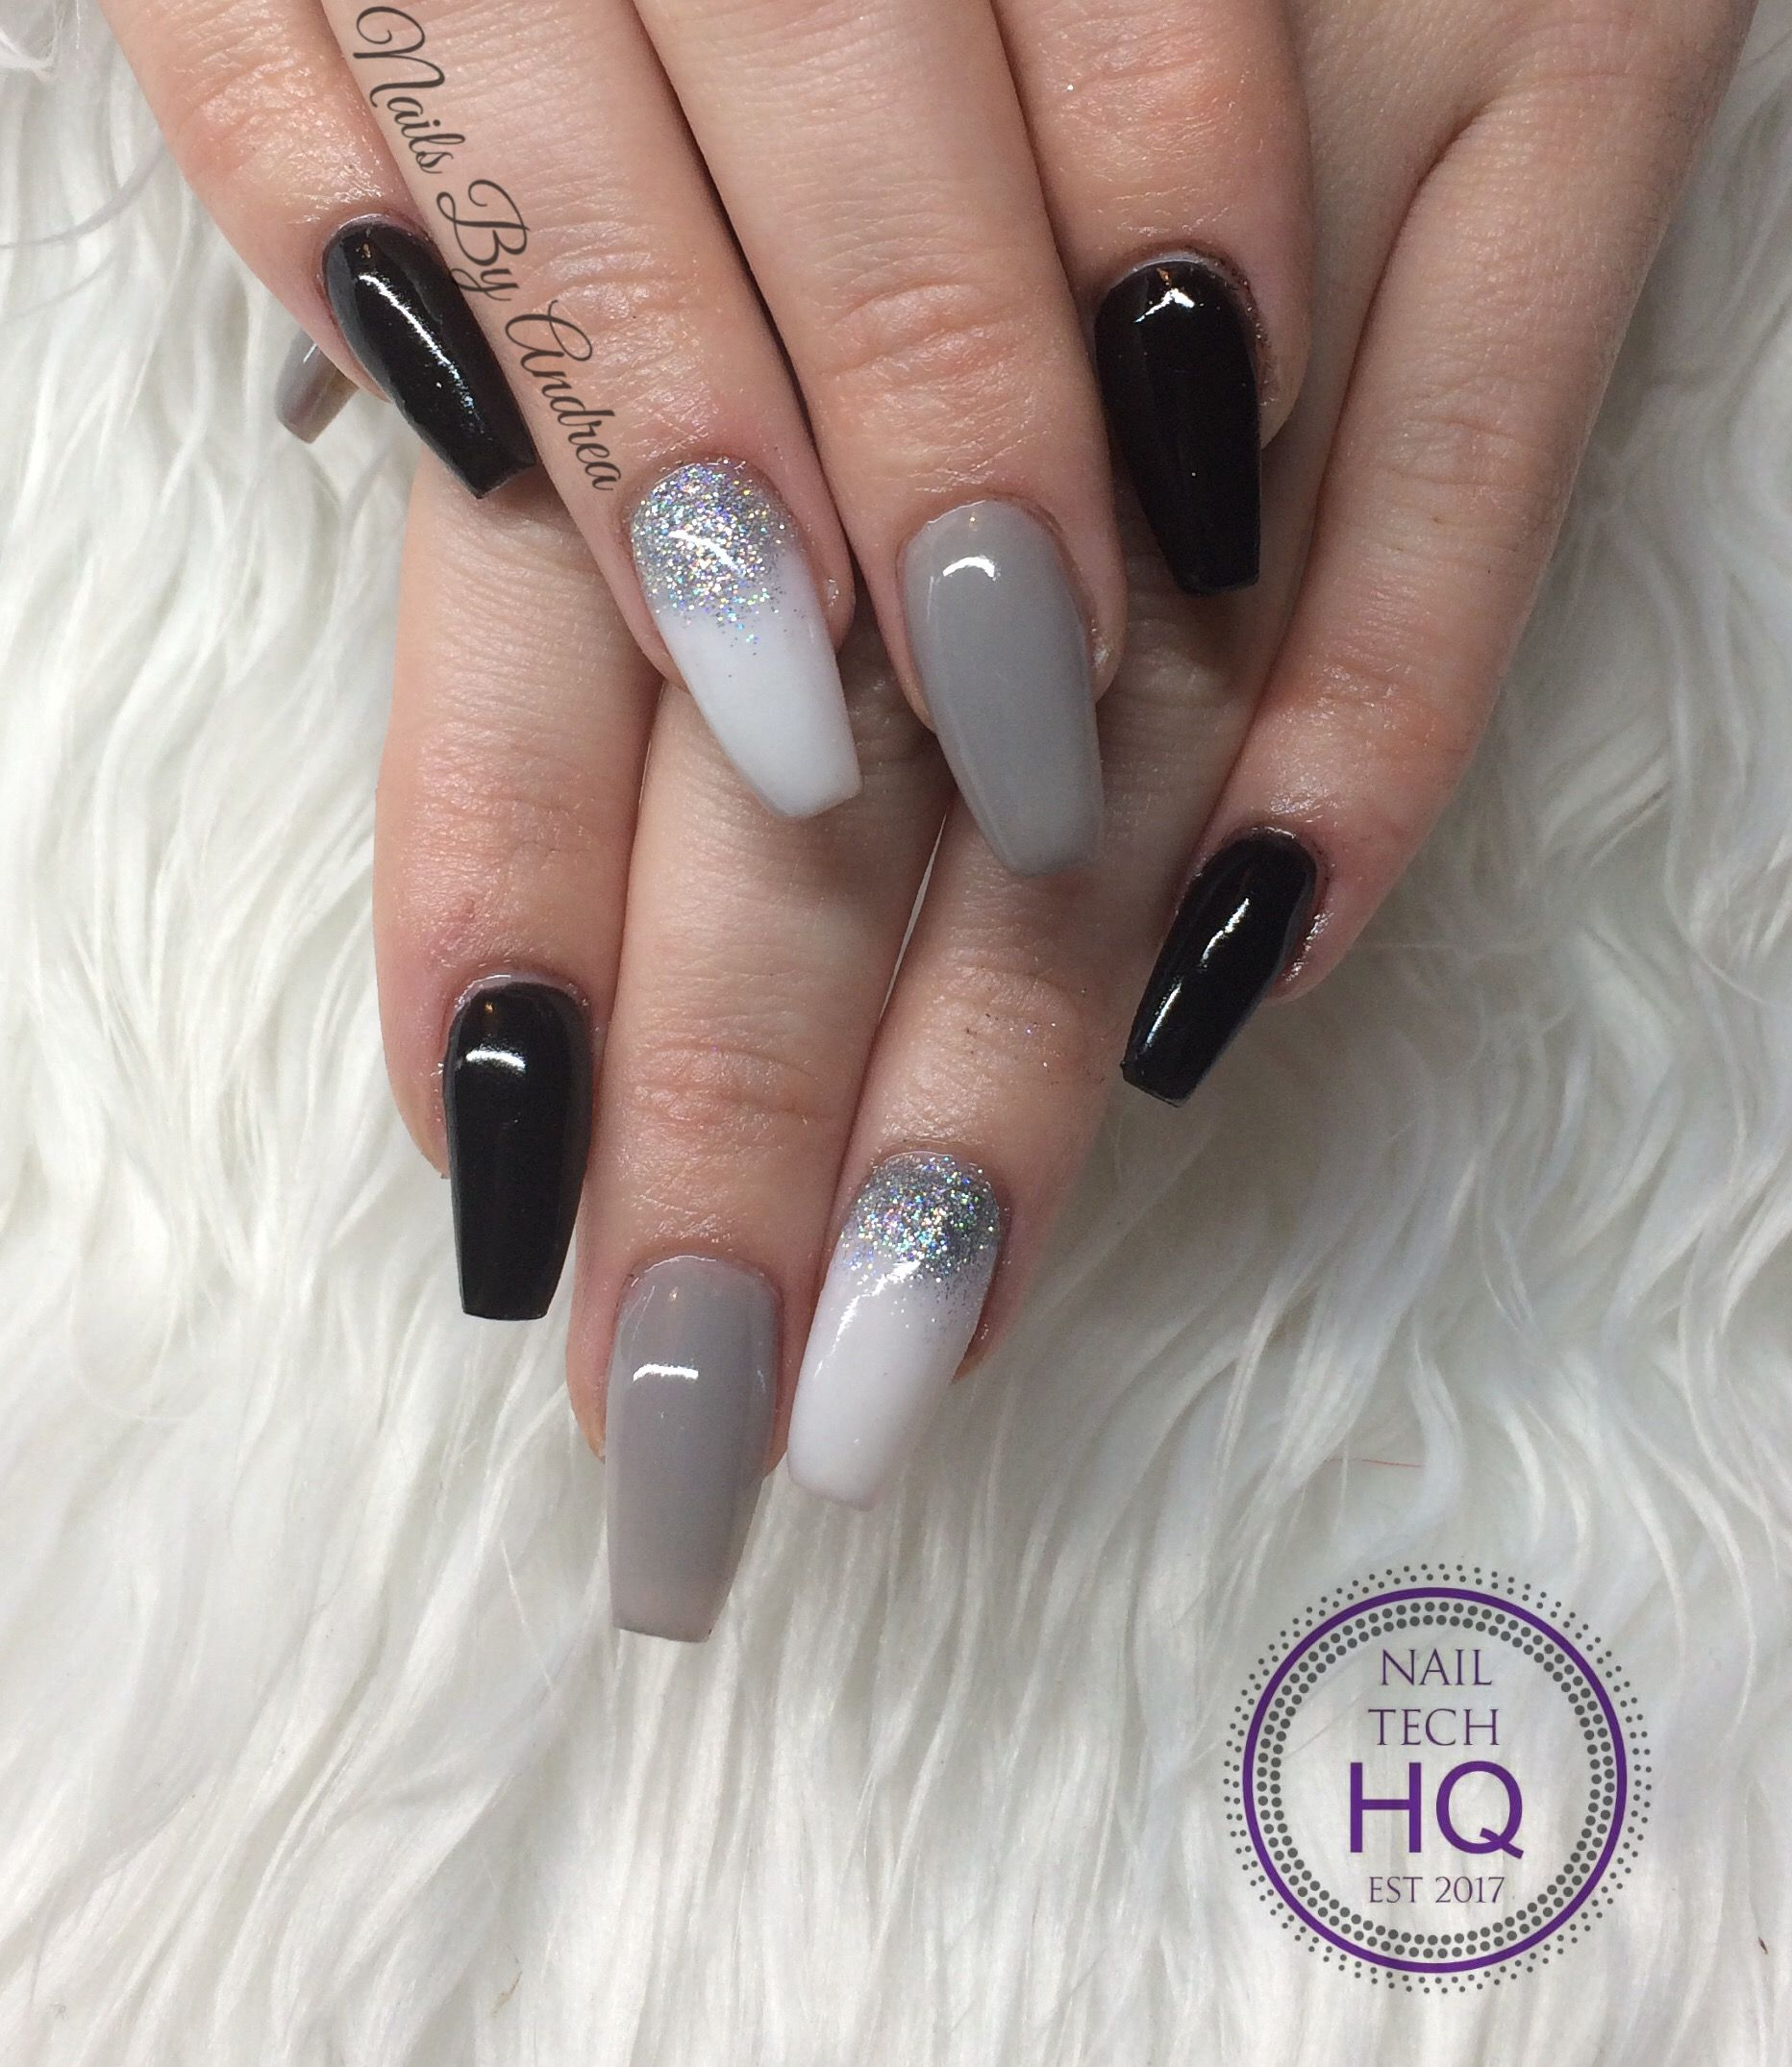 Black Grey White Nails With Silver Glitter Nails Nailart Notpolish Acrylic Sculpted Ballerina Cof White Nail Art Grey Nail Designs Grey Acrylic Nails